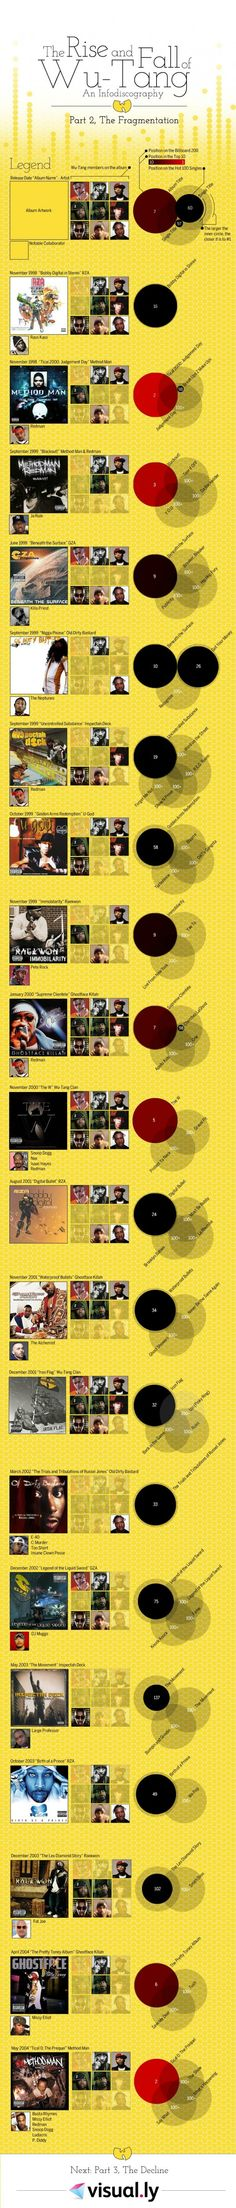 The Rise and Fall of Wu-Tang: Part 2, The Fragmentation   | Visit our new infographic gallery at http://visualoop.com/